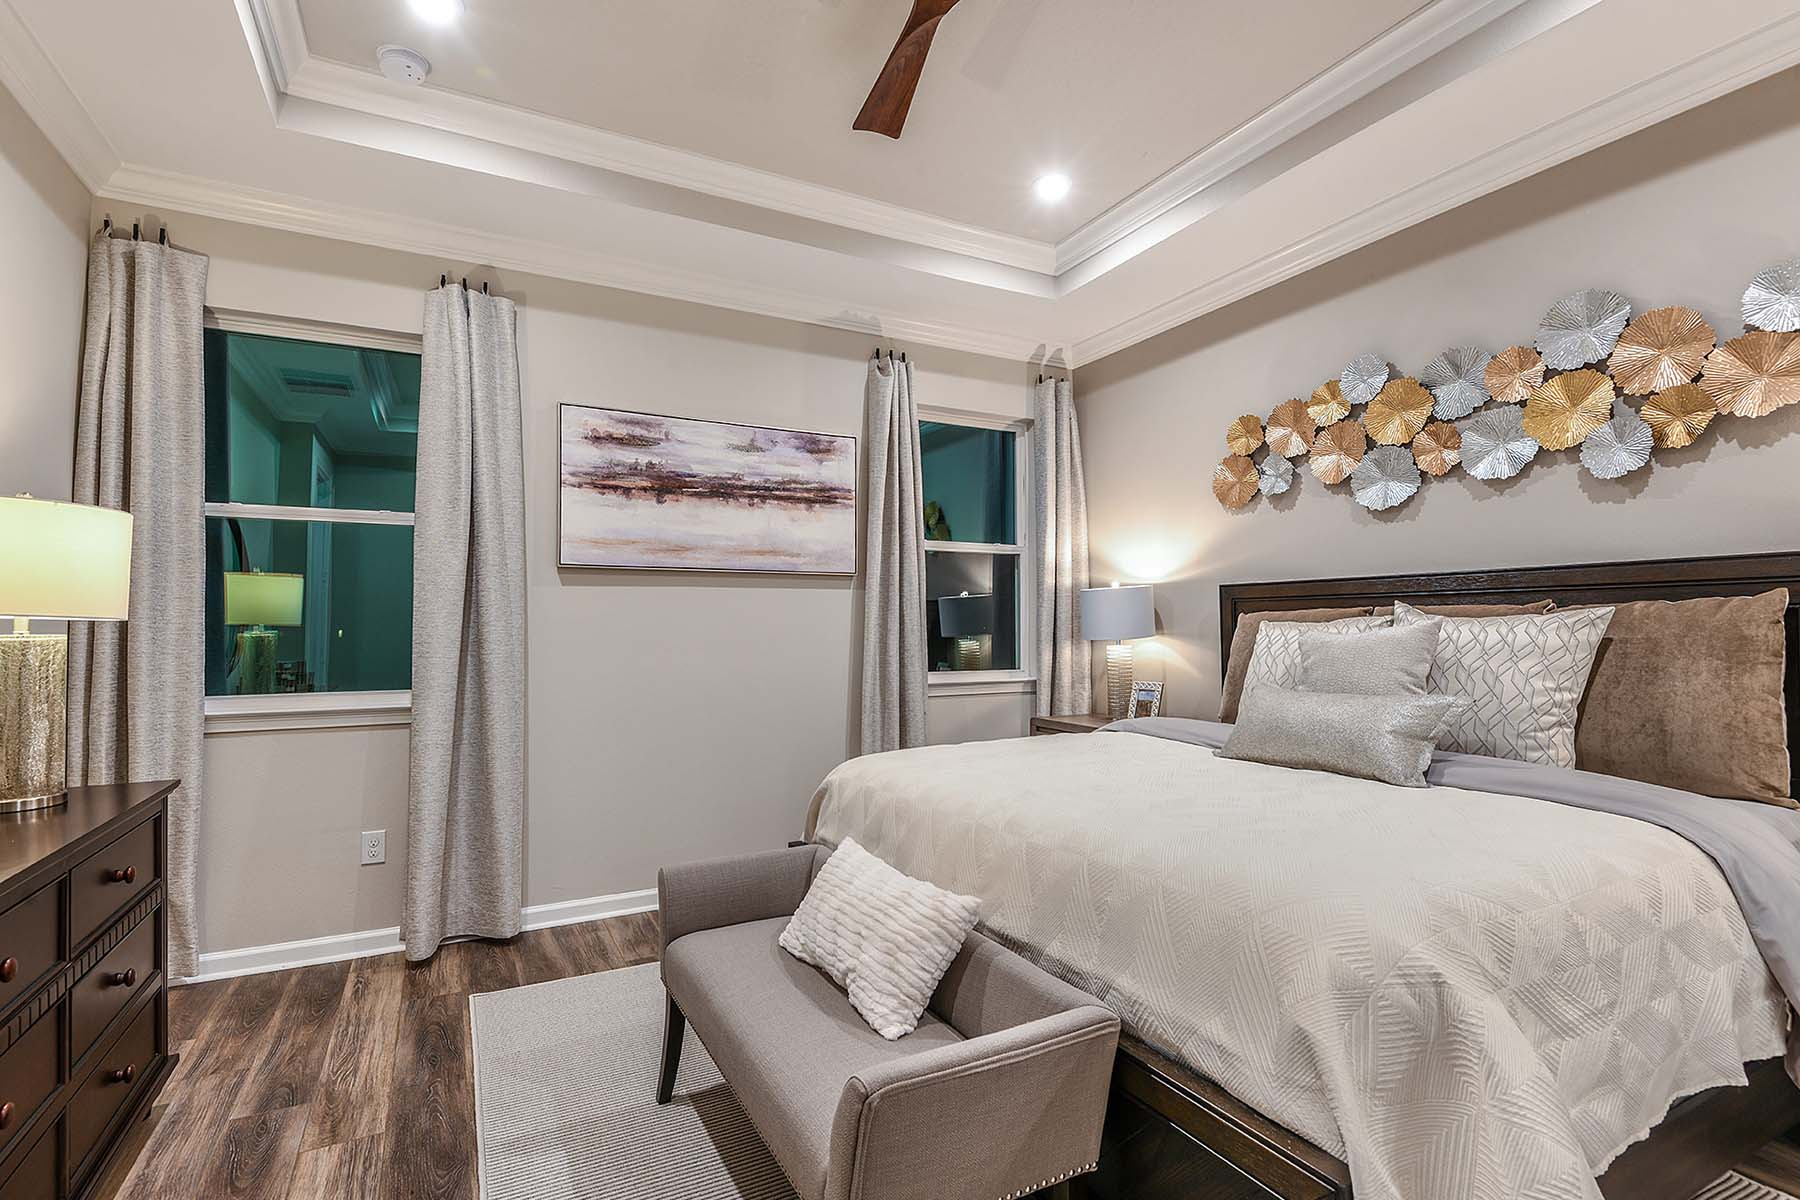 Largo Plan Bedroom at Bonavie Cove in Fort Myers Florida by Mattamy Homes